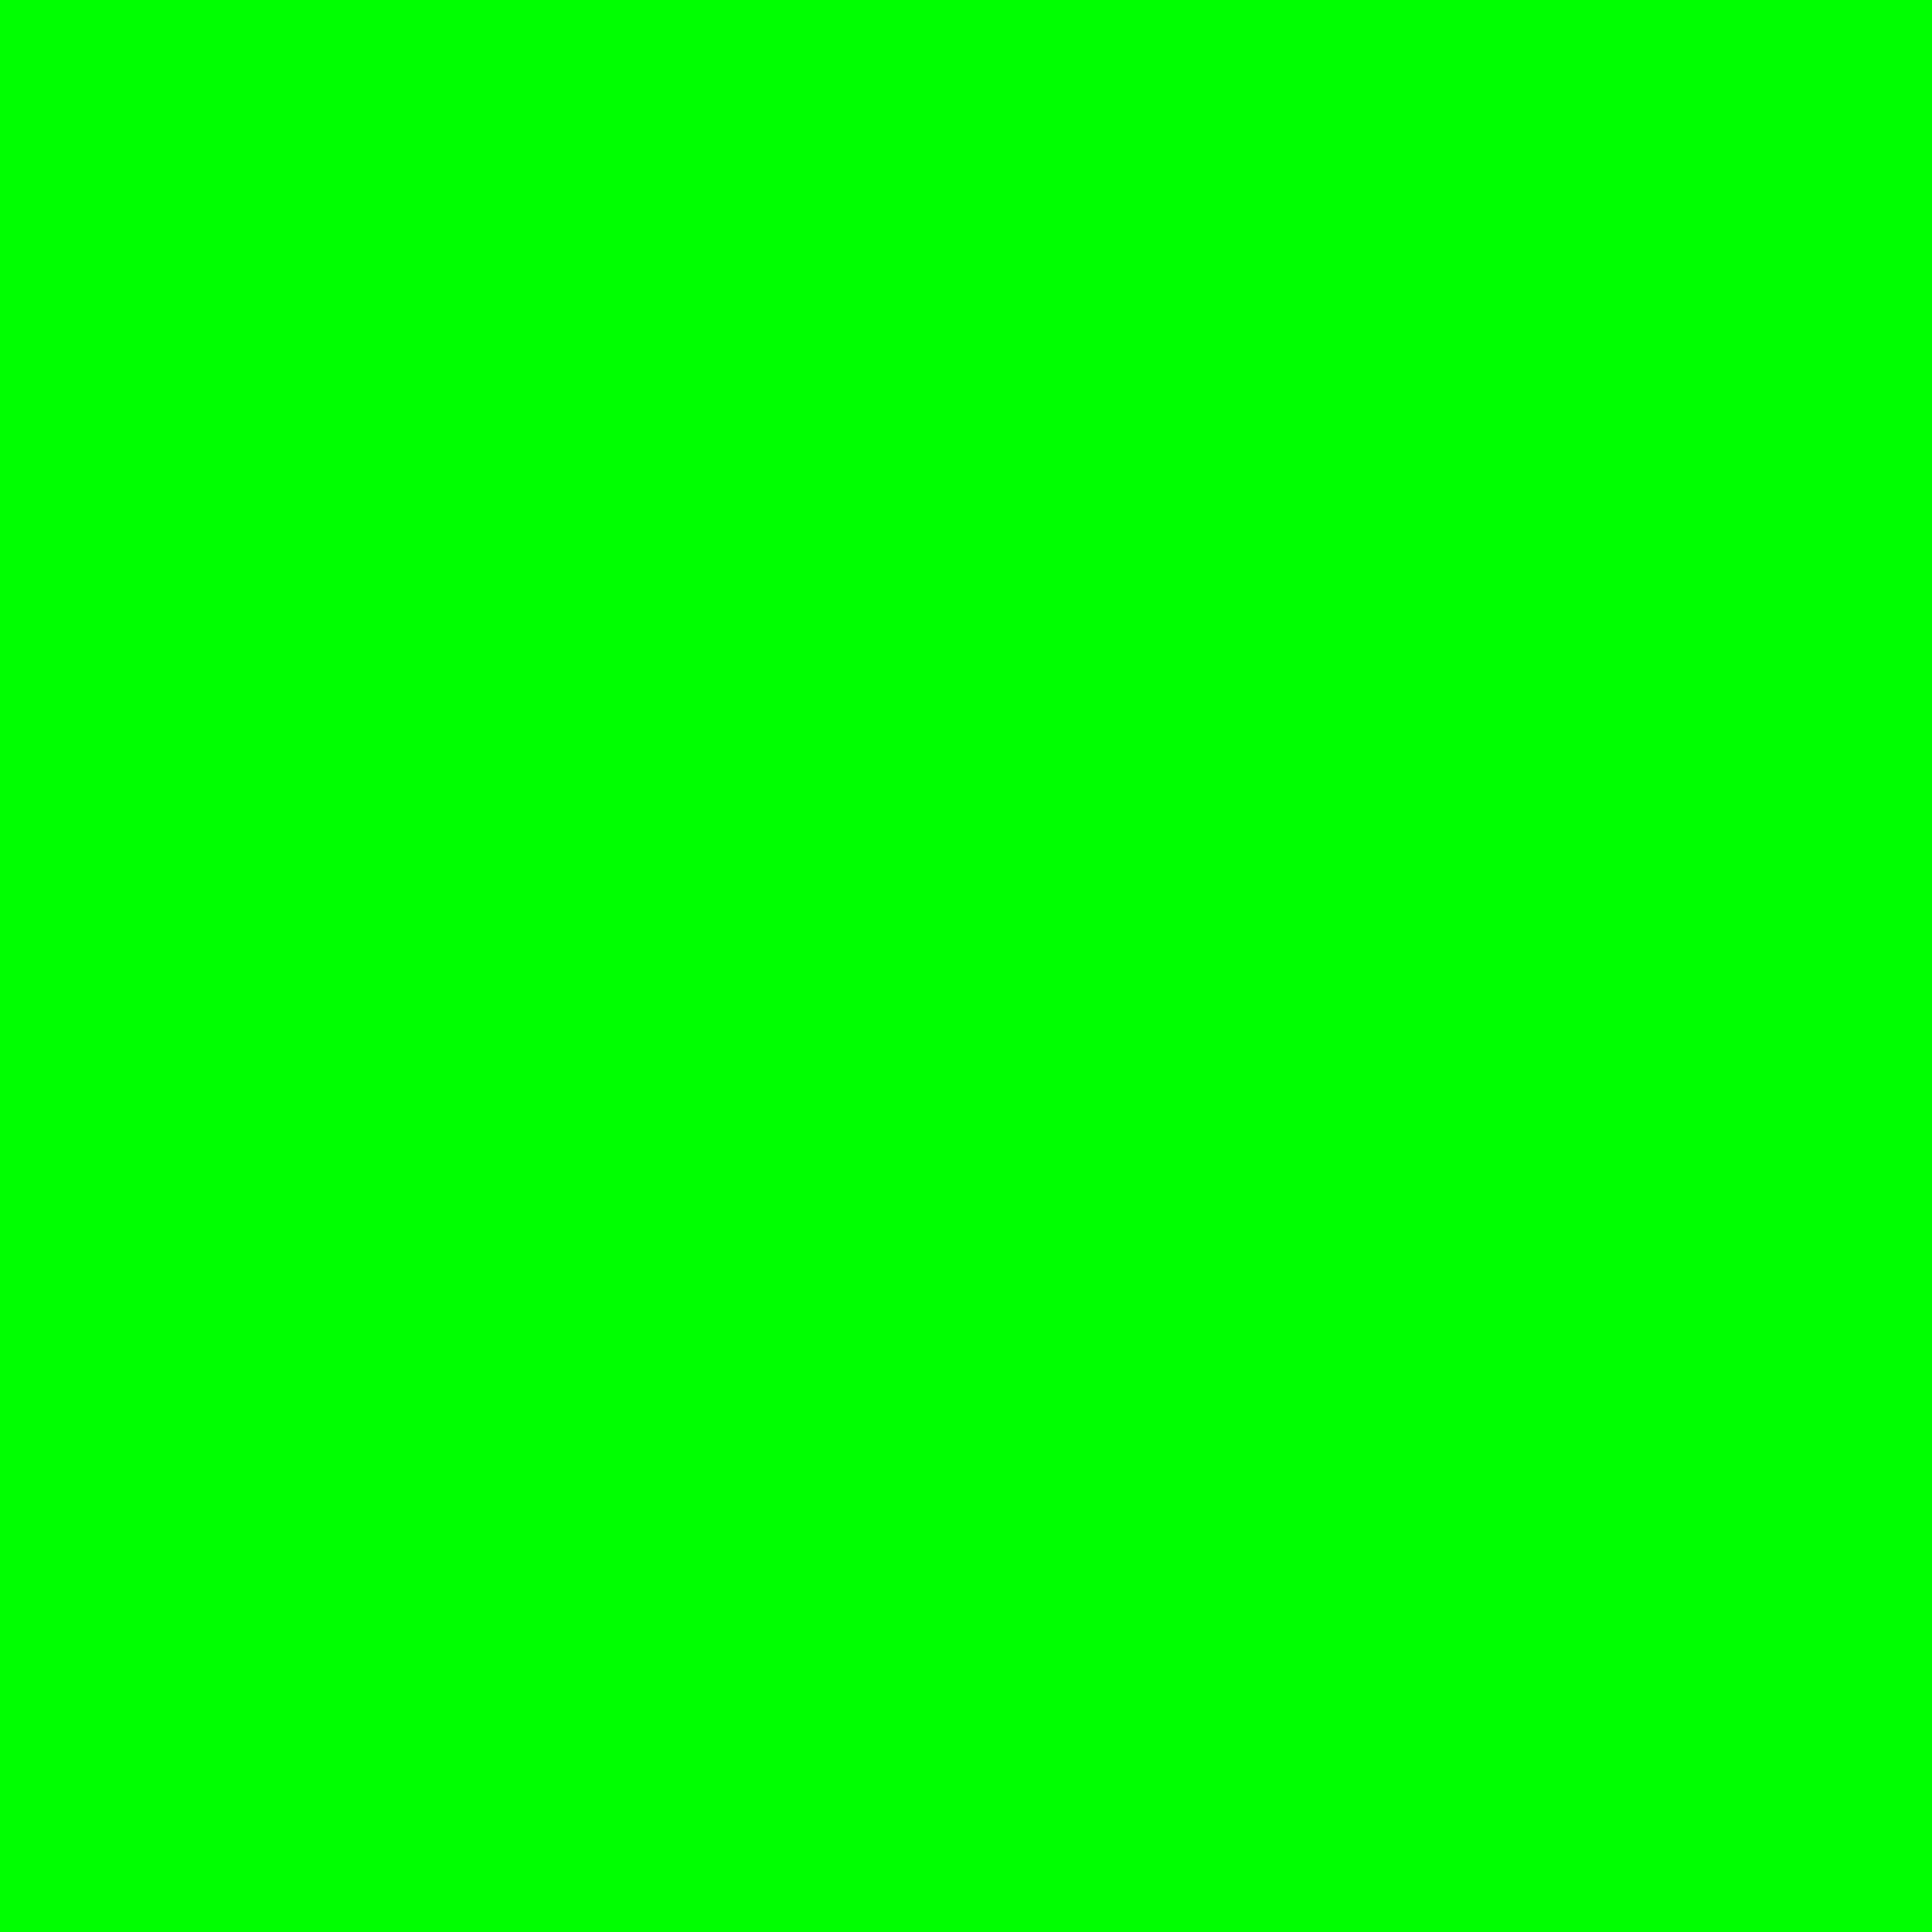 3600x3600 Electric Green Solid Color Background